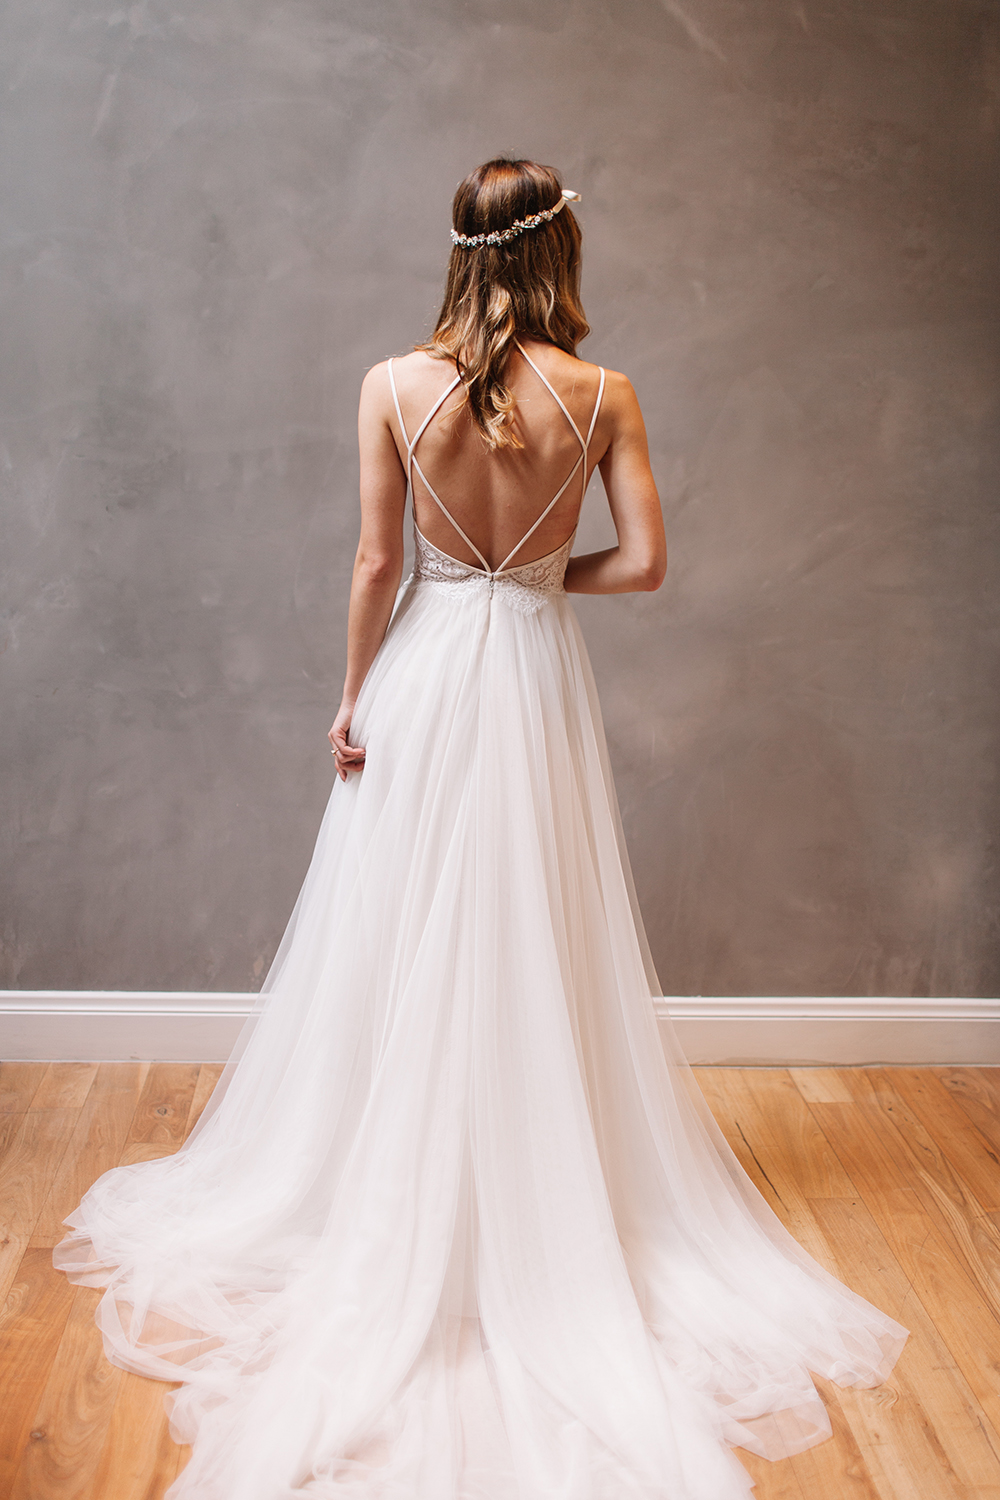 e3ca56bfa9f0a Sexy Backless Wedding Dress, Beautiful Backless Wedding Dresses and Gowns,  Strappy Back, Lace and Tulle Wedding Dress, Wedding Dress, A-line Wedding  Dress